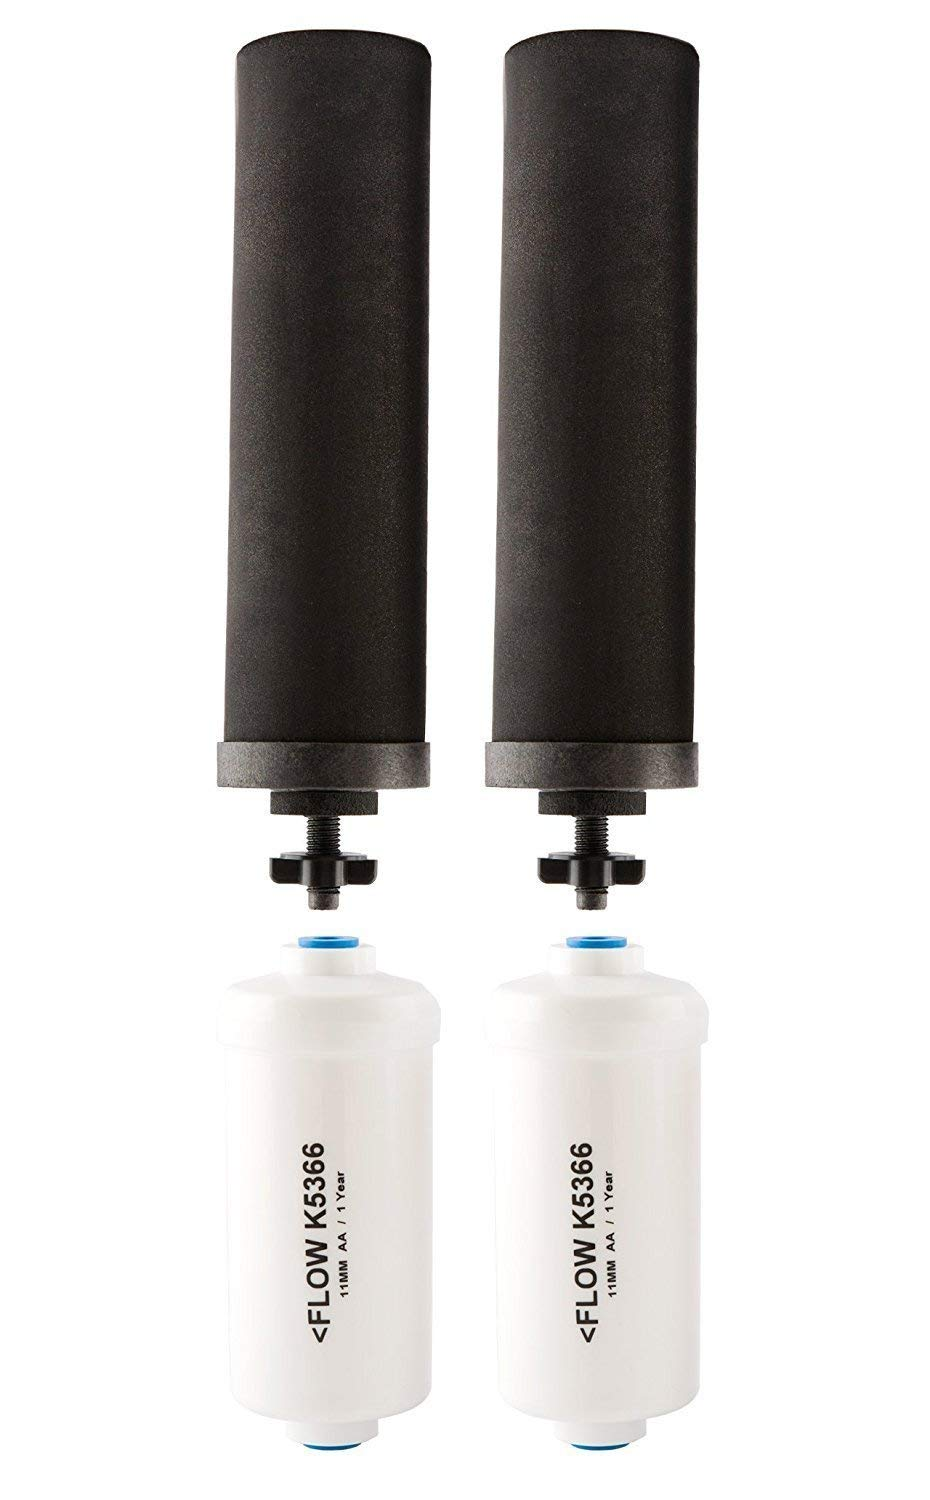 Black Berkey Replacement Filters & Fluoride Filters Combo Pack - Includes 2 Black Filters and 2 Fluoride Filters by Berkey (Image #1)